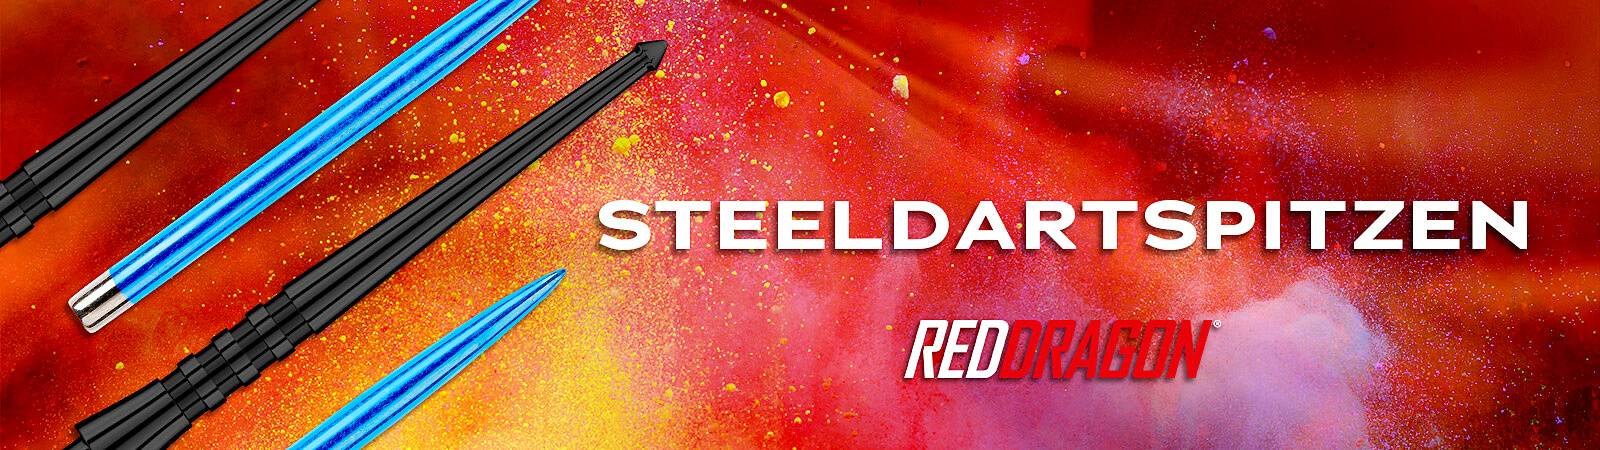 Red Dragon Steeldartspitzen